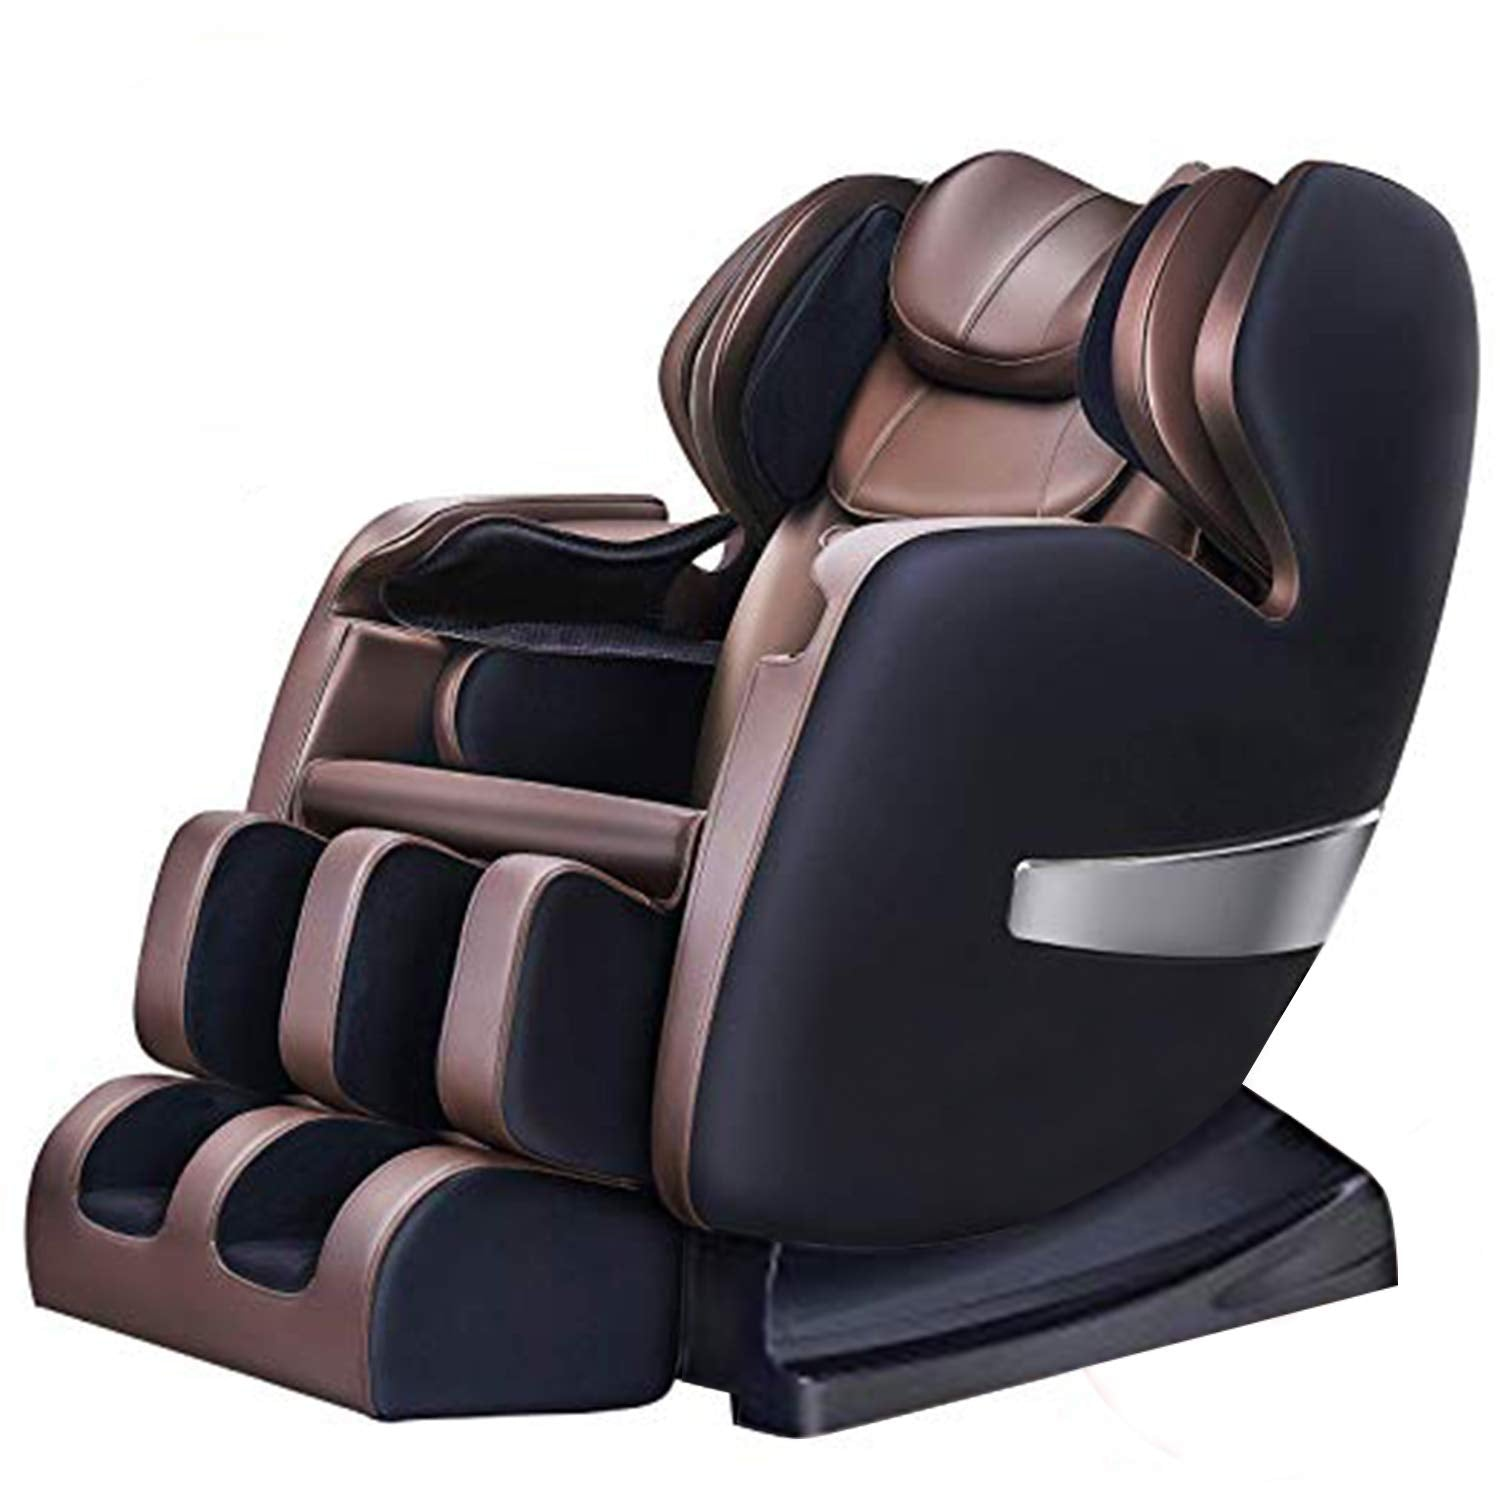 Ootori A600 Massage Chair